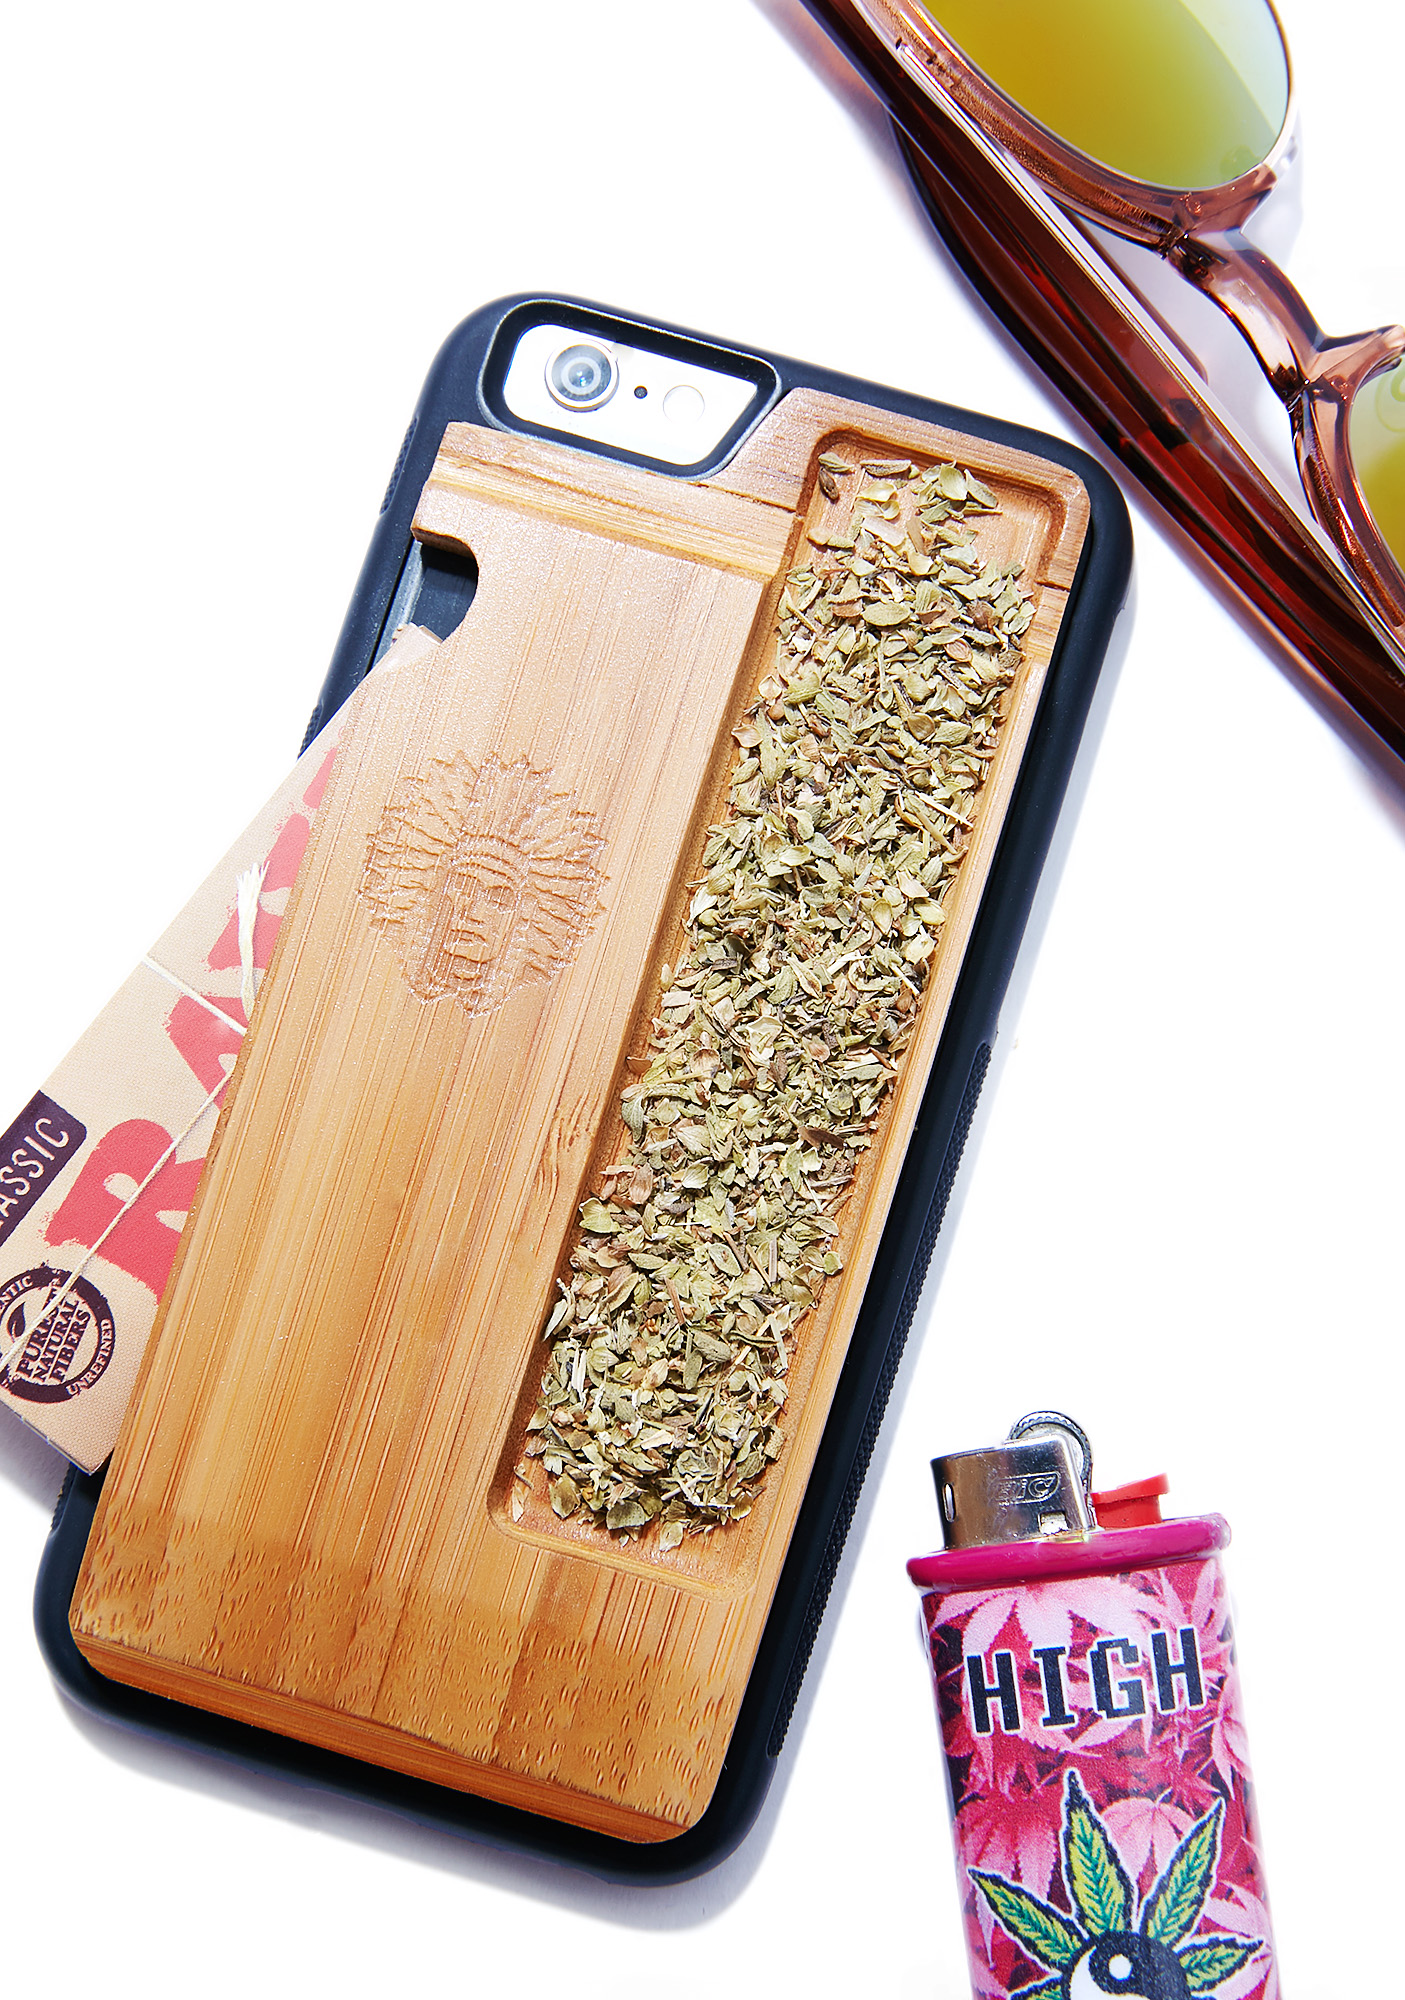 iChief Rolling Tray iPhone 6/6S Case